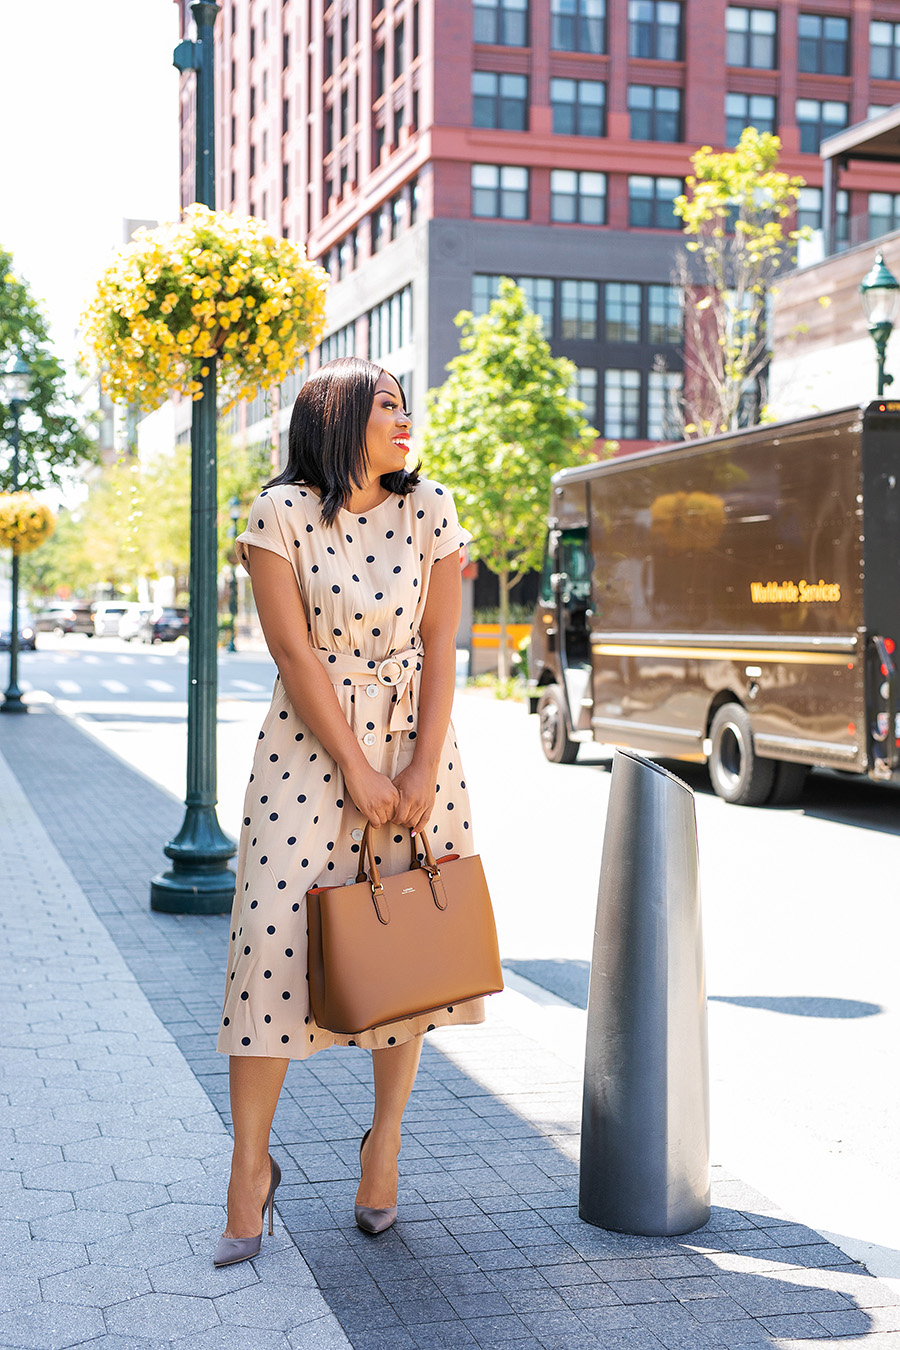 Summer Dresses to Wear For Work